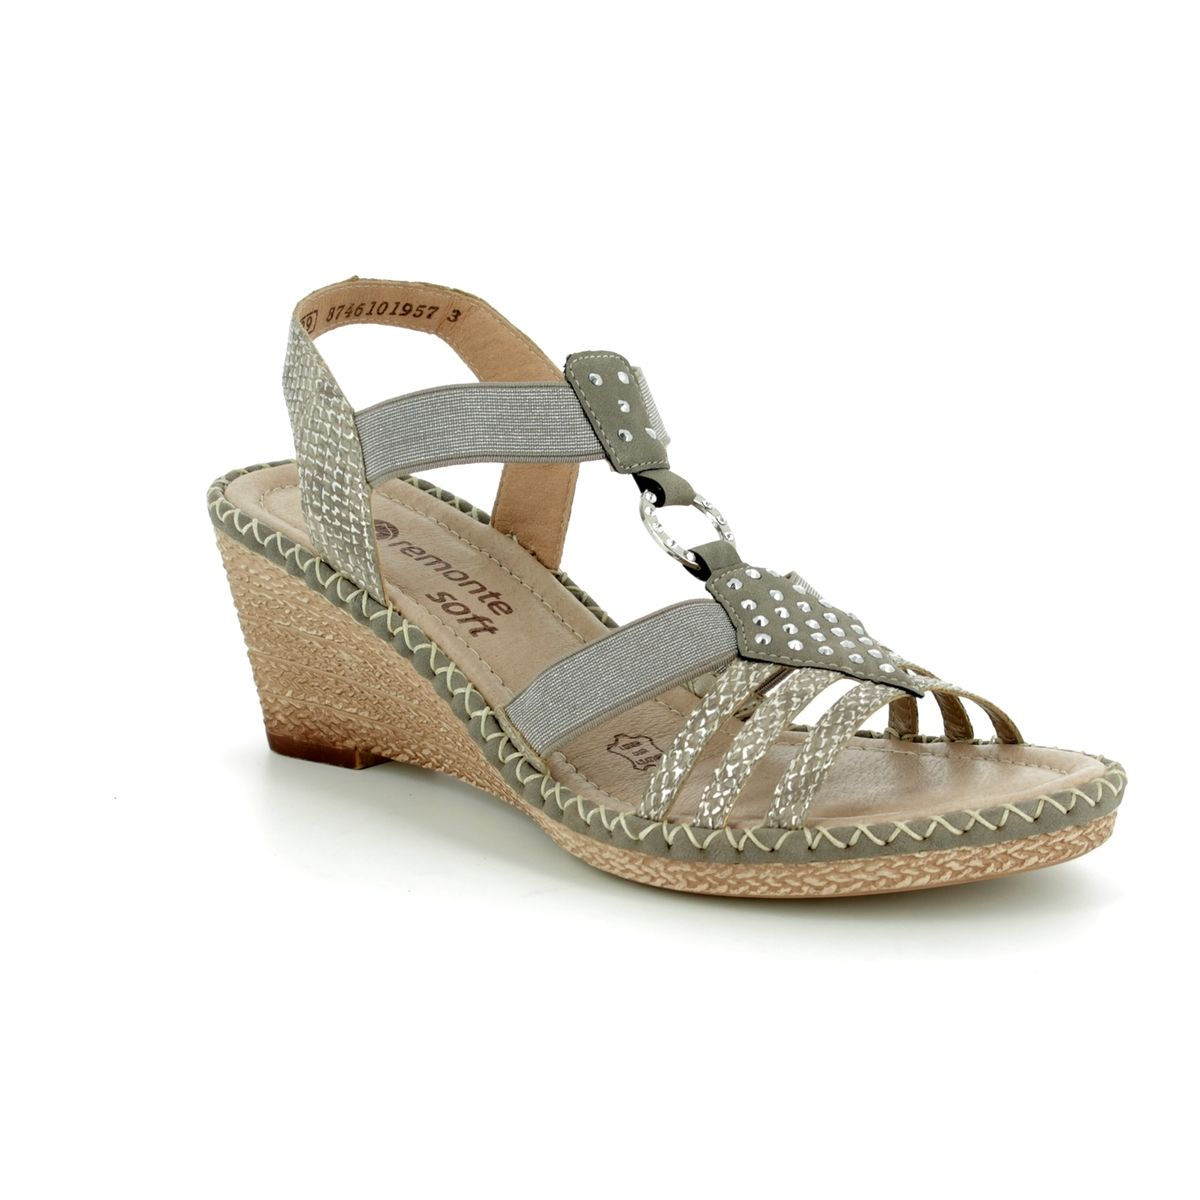 b0789b70a8a6 Remonte Wedge Sandals - Metallic - D6768-65 ROBCENE